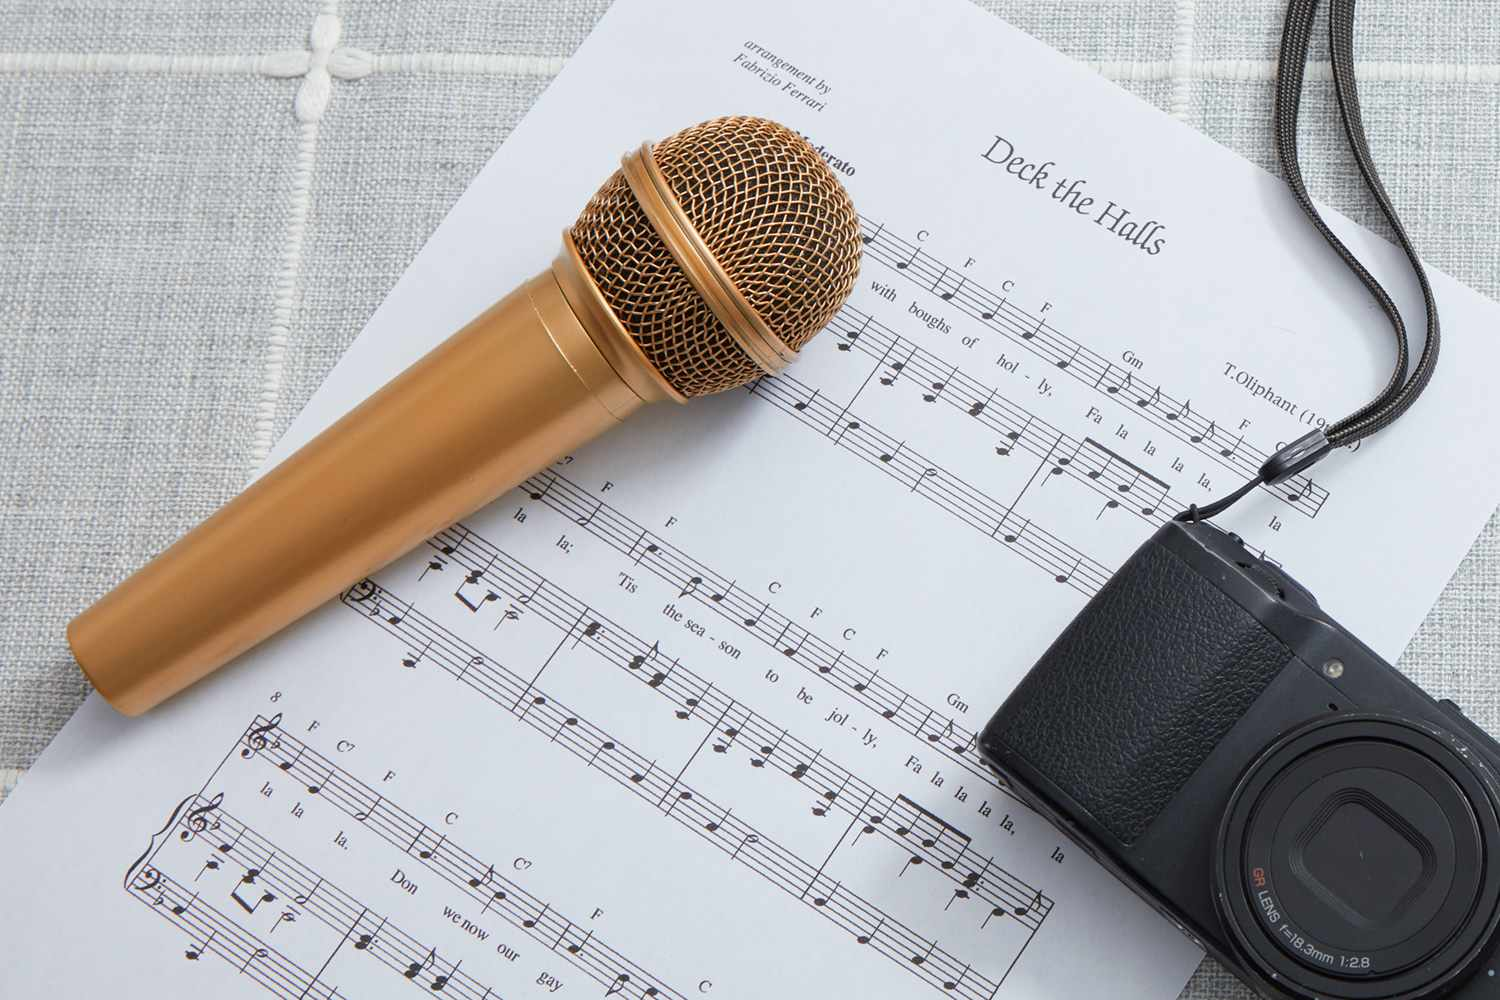 Deck the Halls sheet music and microphone for talent show